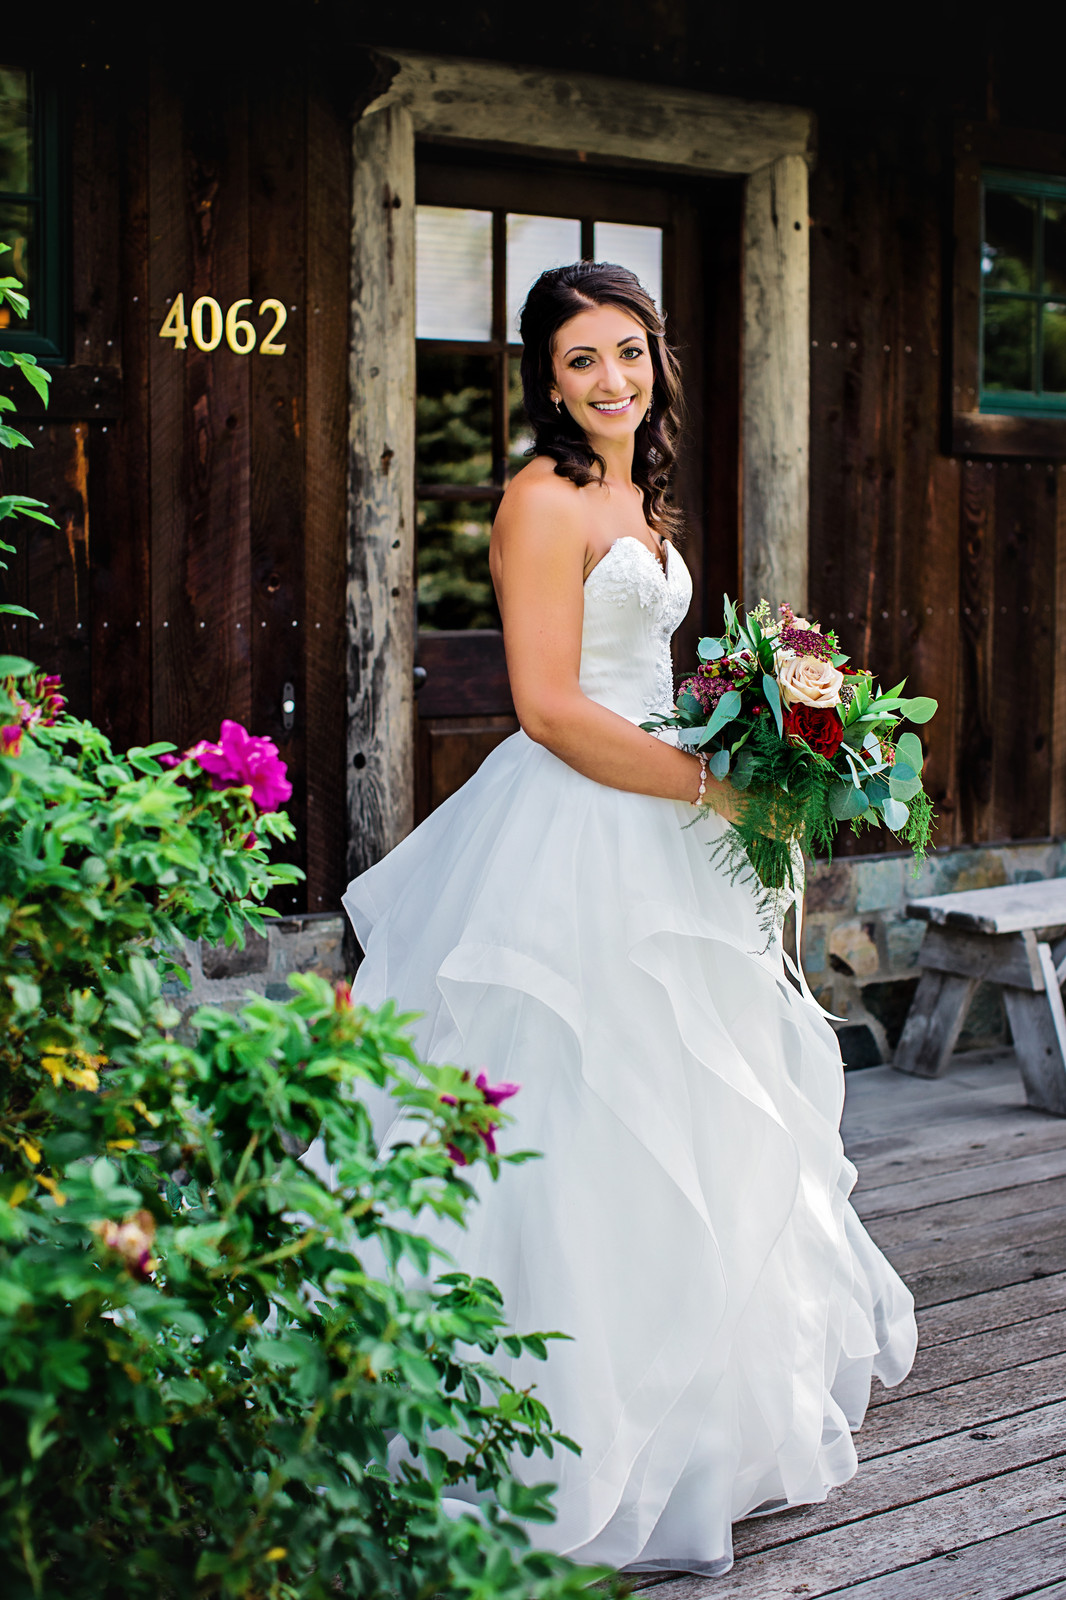 Wedding Gowns After 5 And Weddings